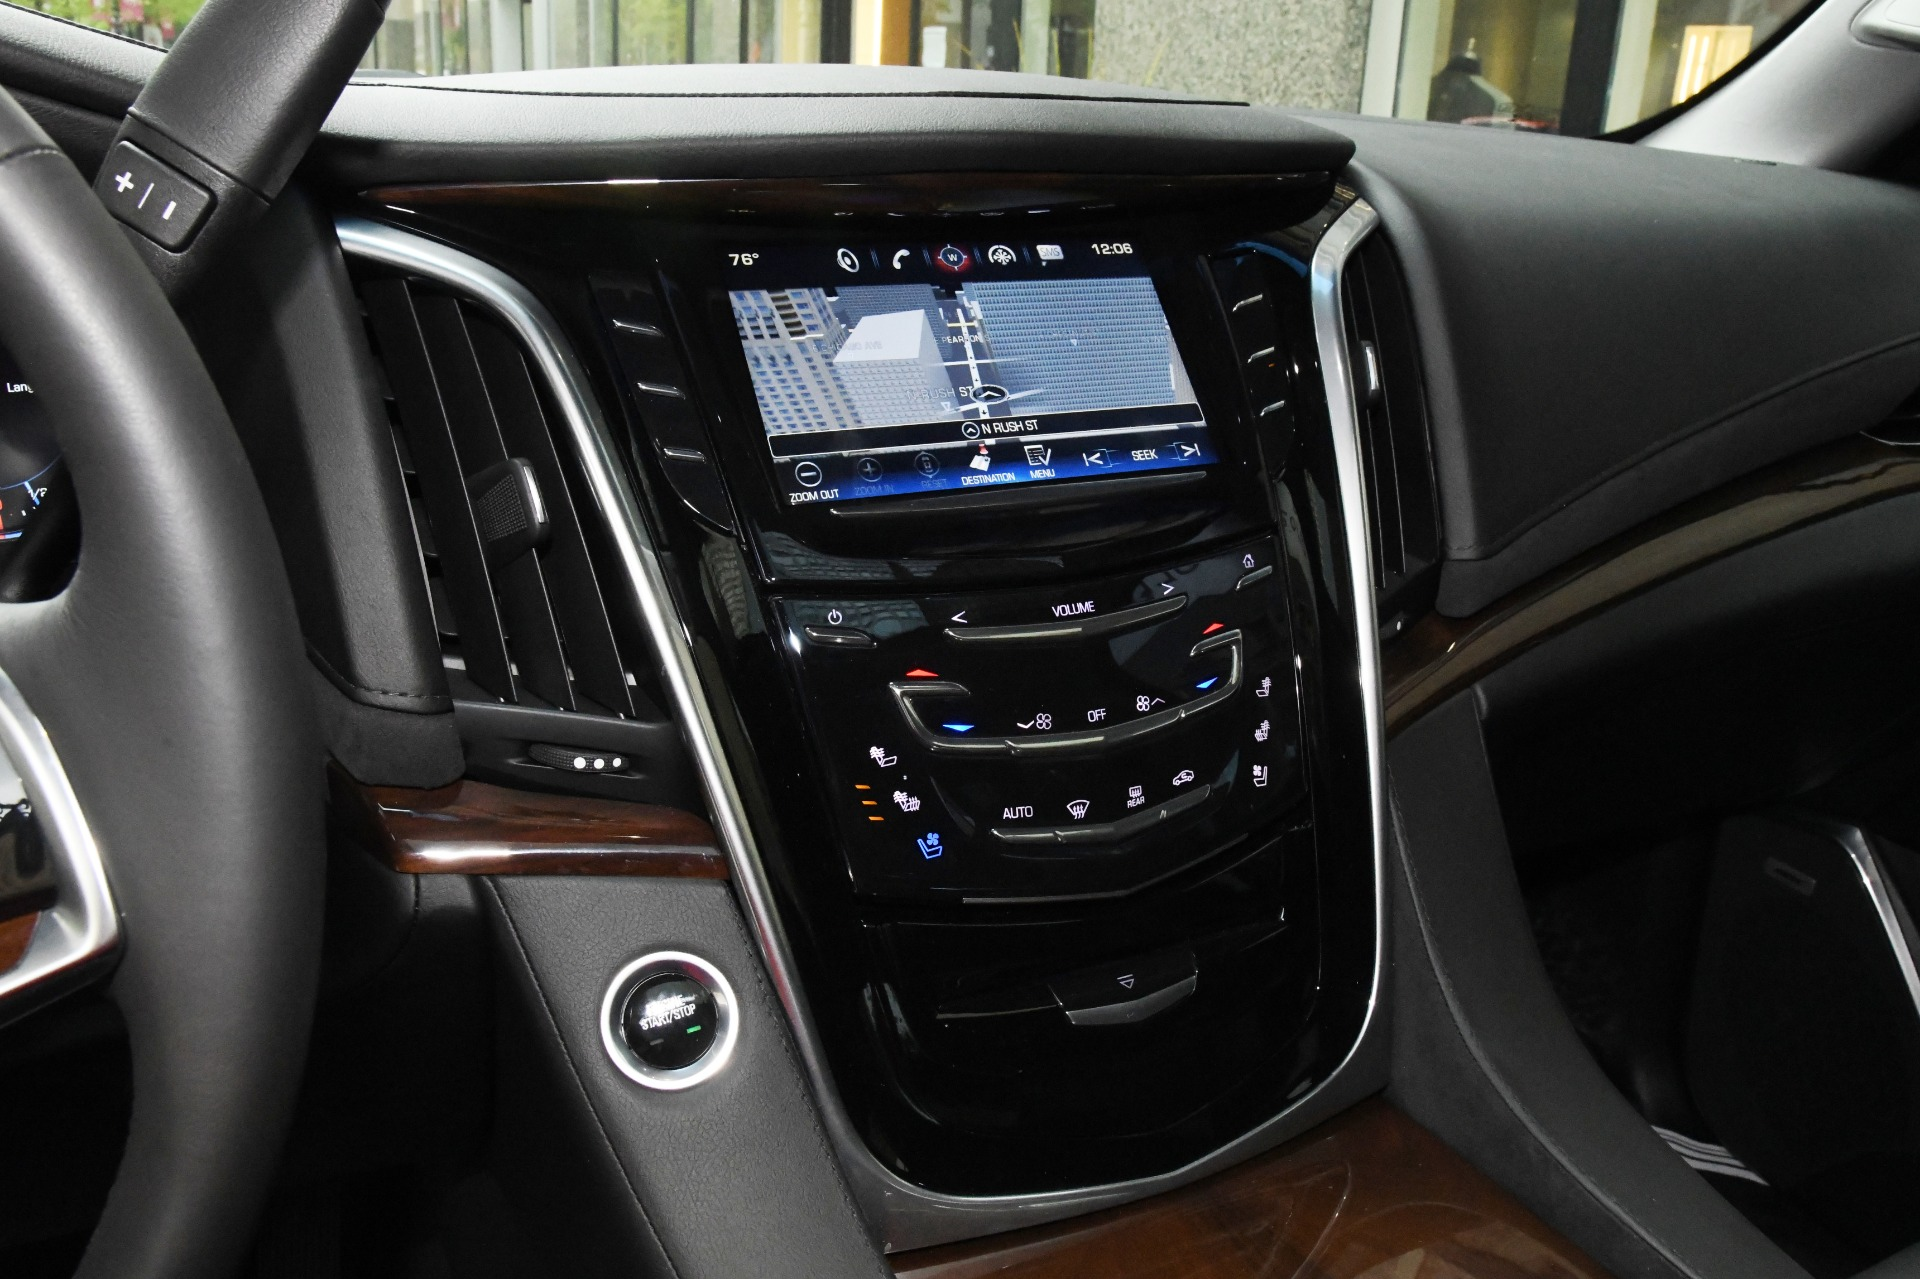 Used 2019 Cadillac Escalade Premium Luxury | Chicago, IL